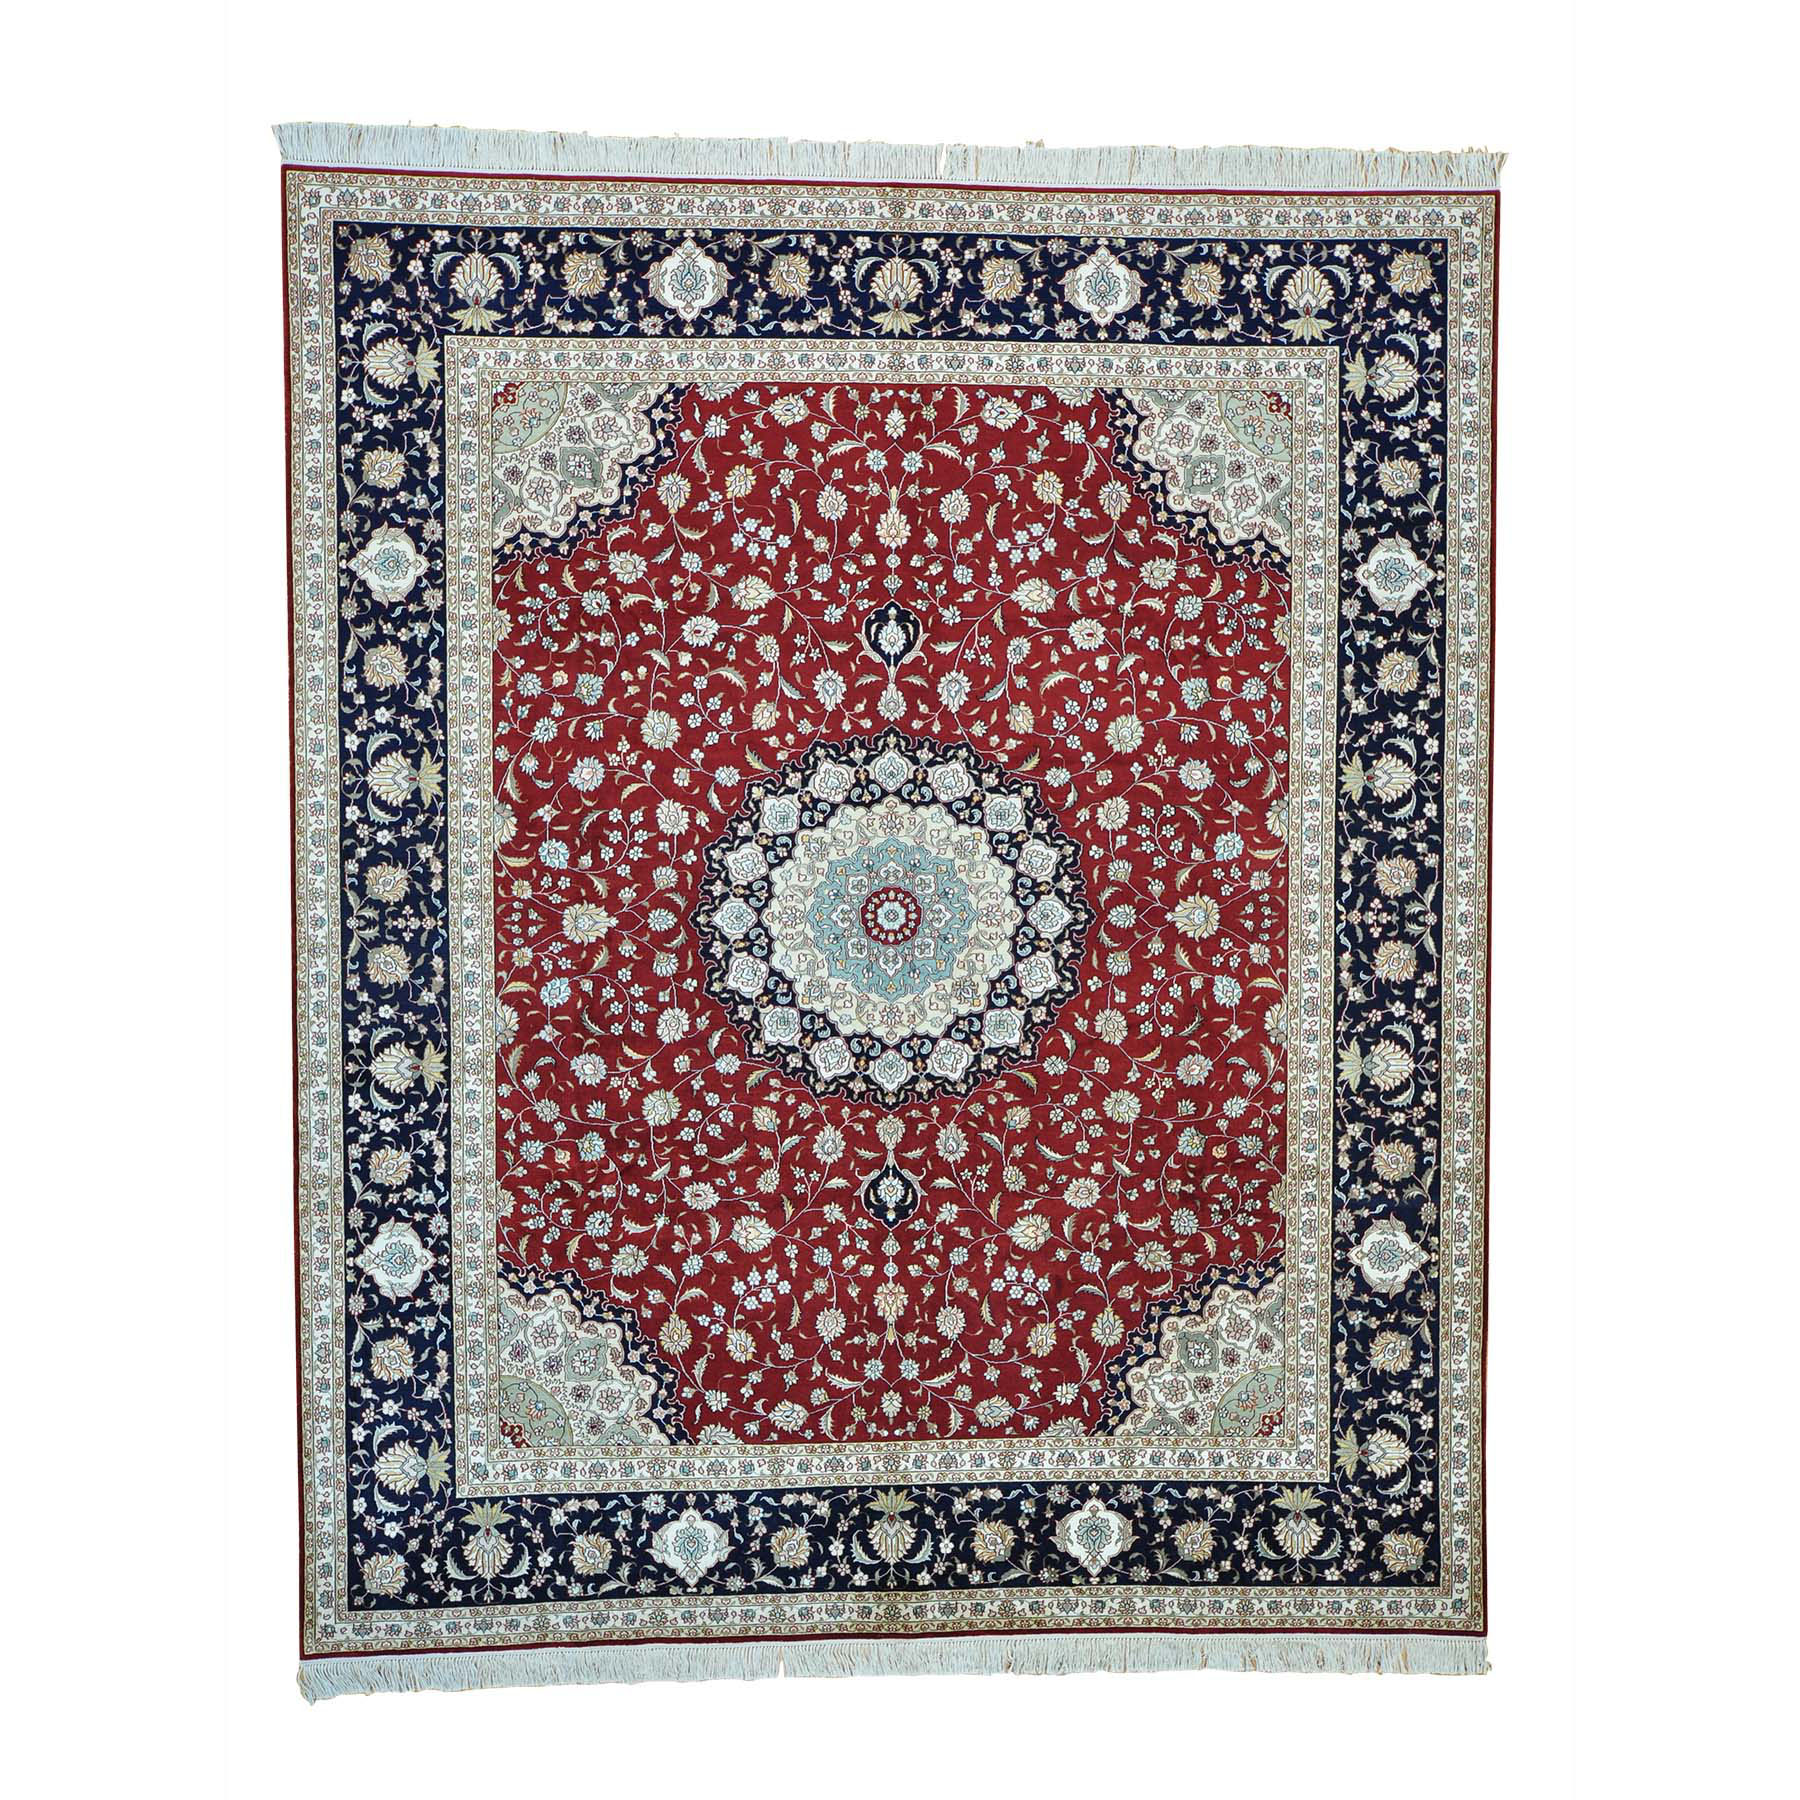 Pirniakan Collection Hand Knotted Red Rug No: 153748